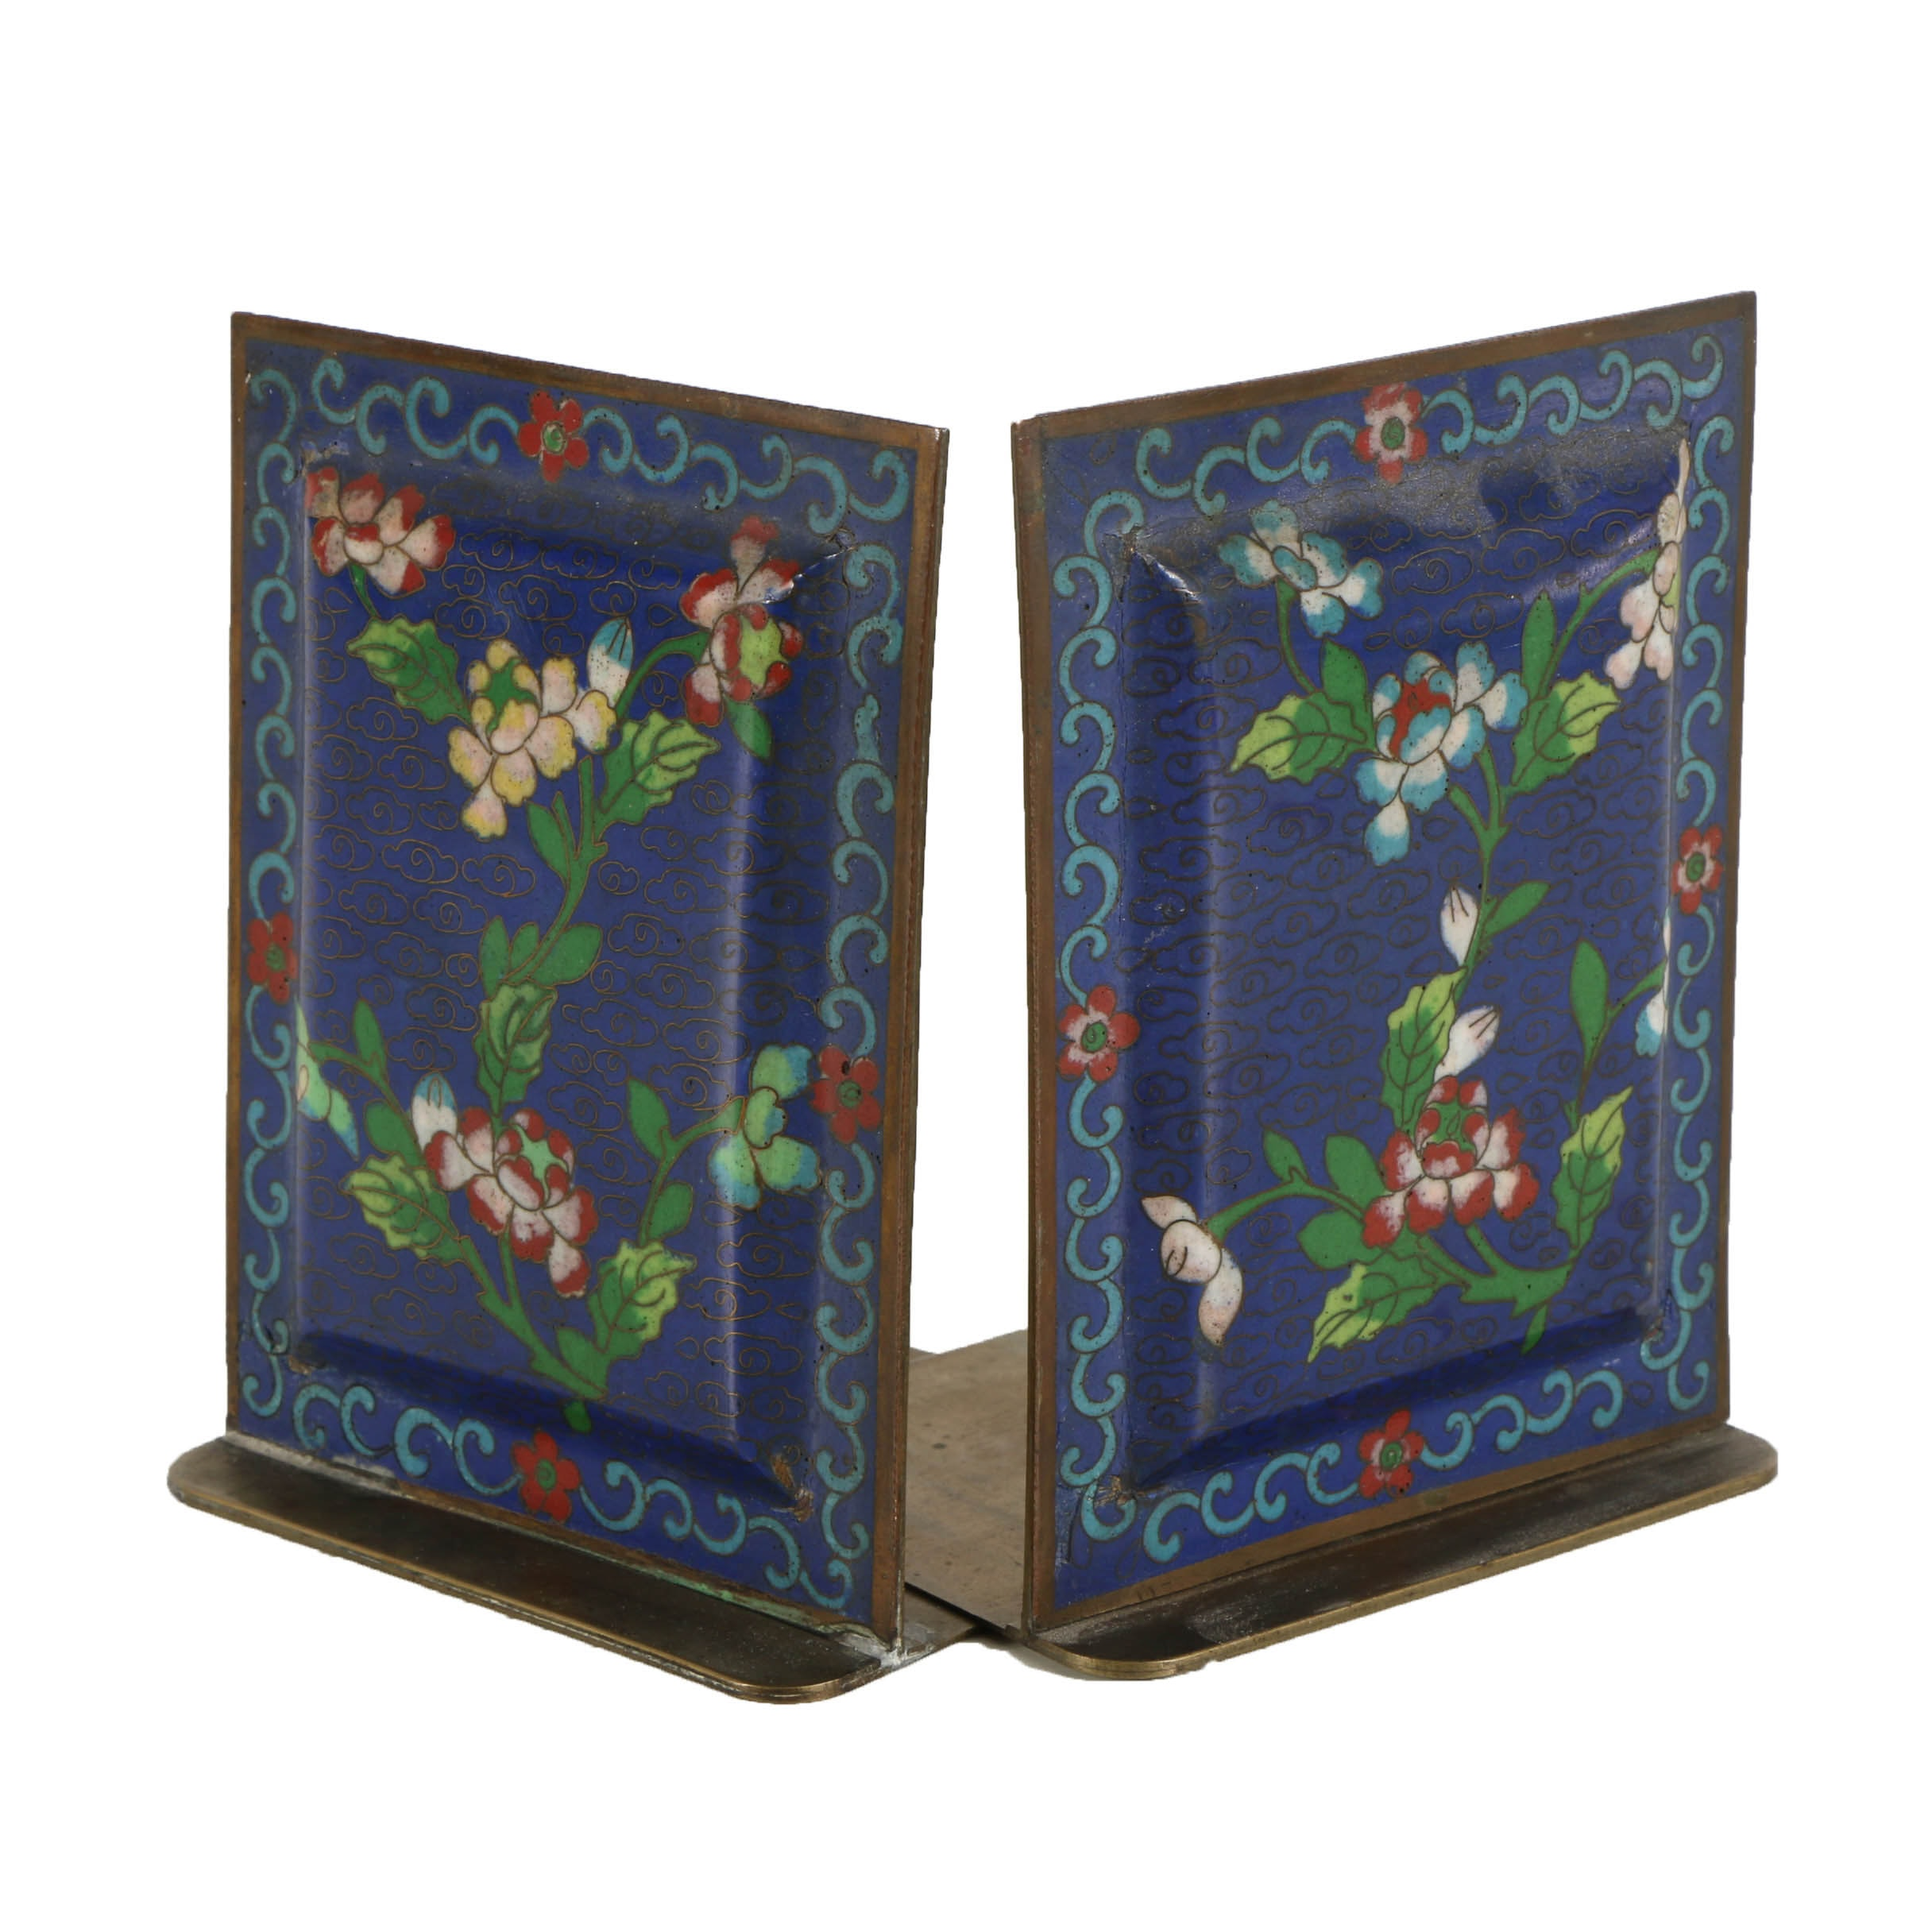 Pair of Chinese Cloisonné Bookends with Floral Motif